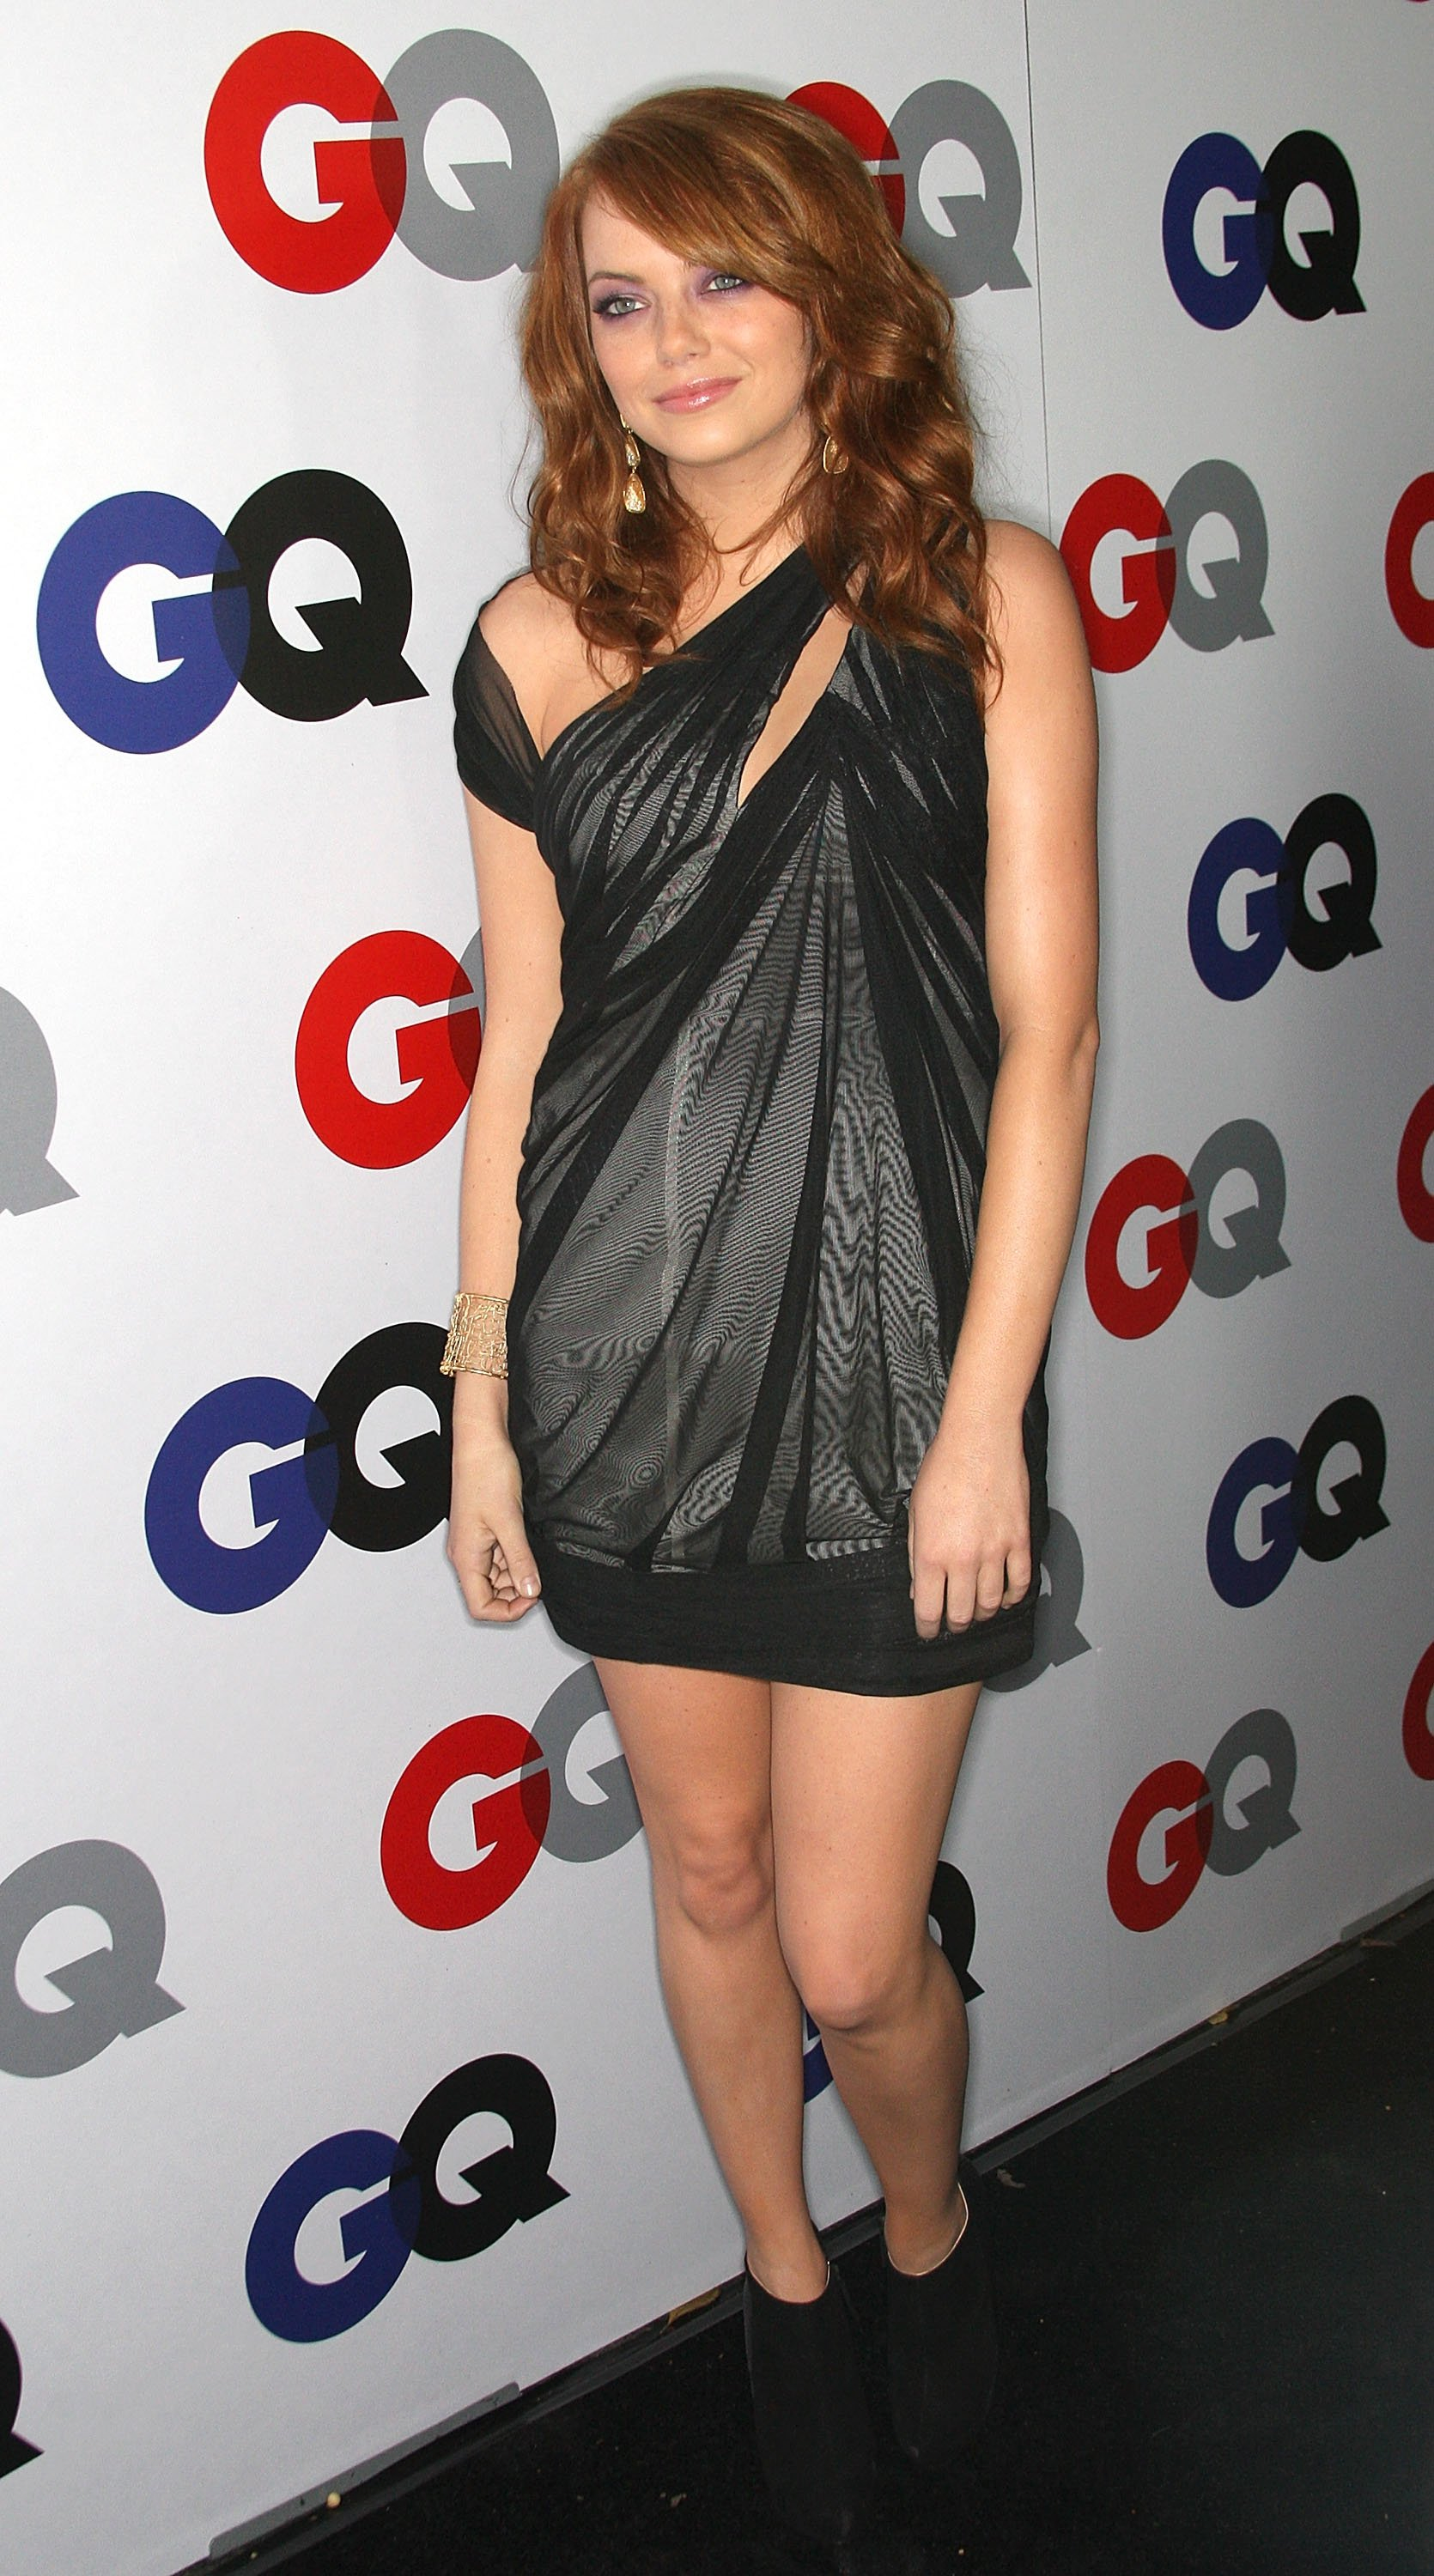 41893_Celebutopia-Emma_Stone-14th_annual_GQ_Men_of_the_Year_Party-06_122_1030lo.jpg